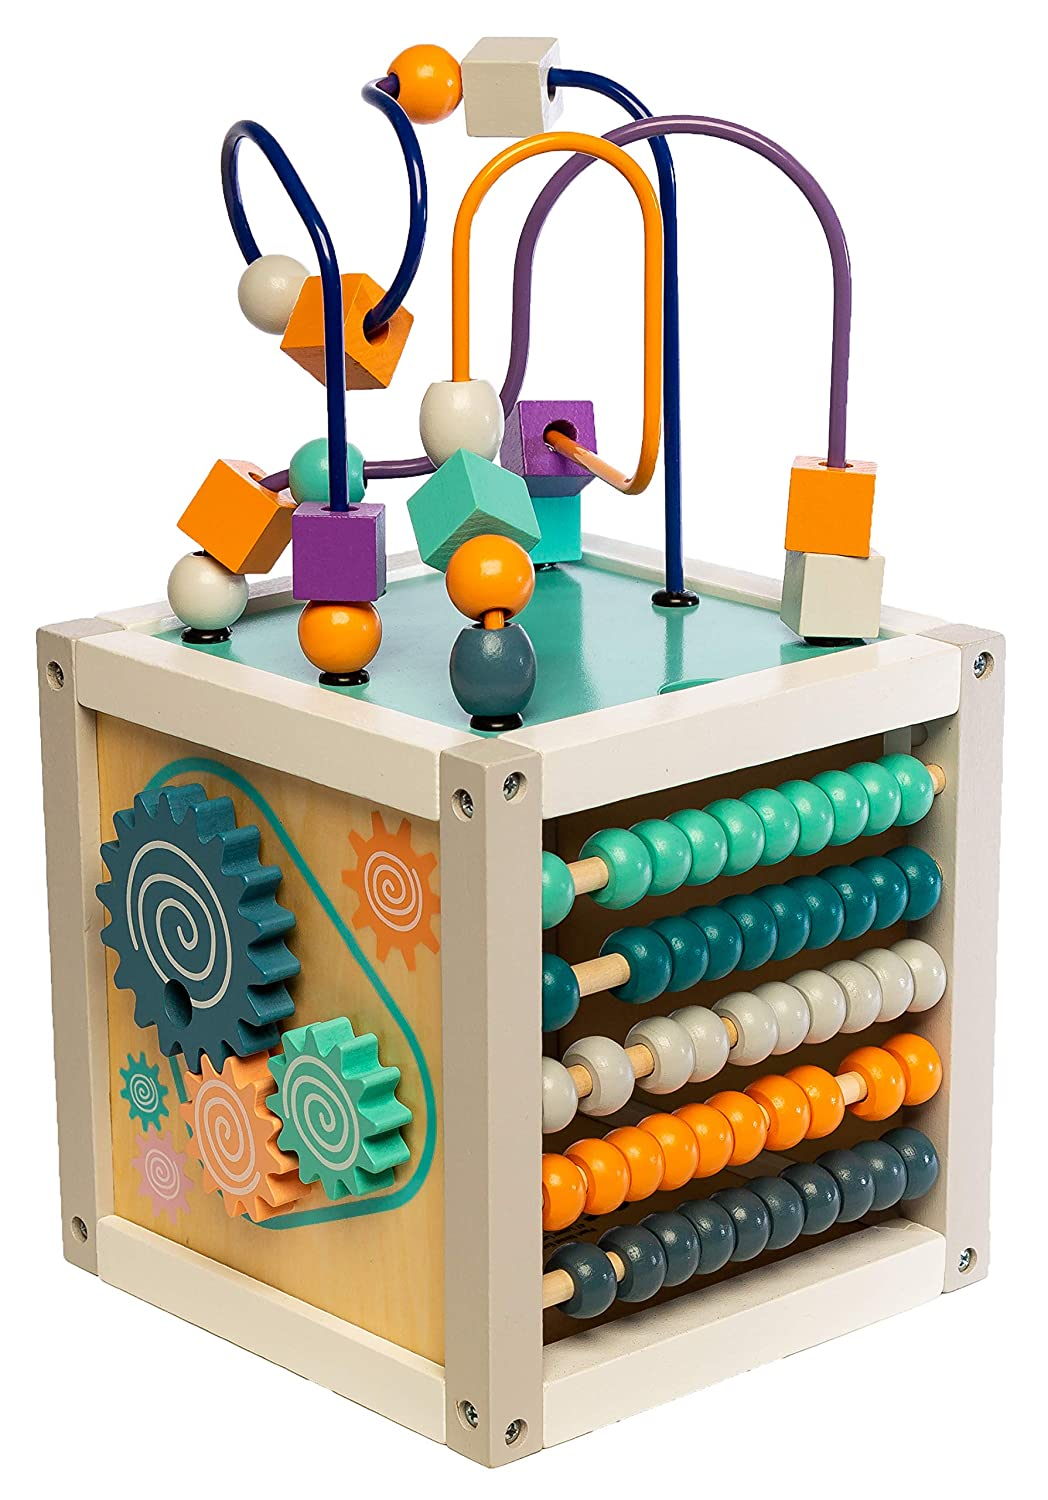 MMP Living 6-in-1 Play Cube Activity Center